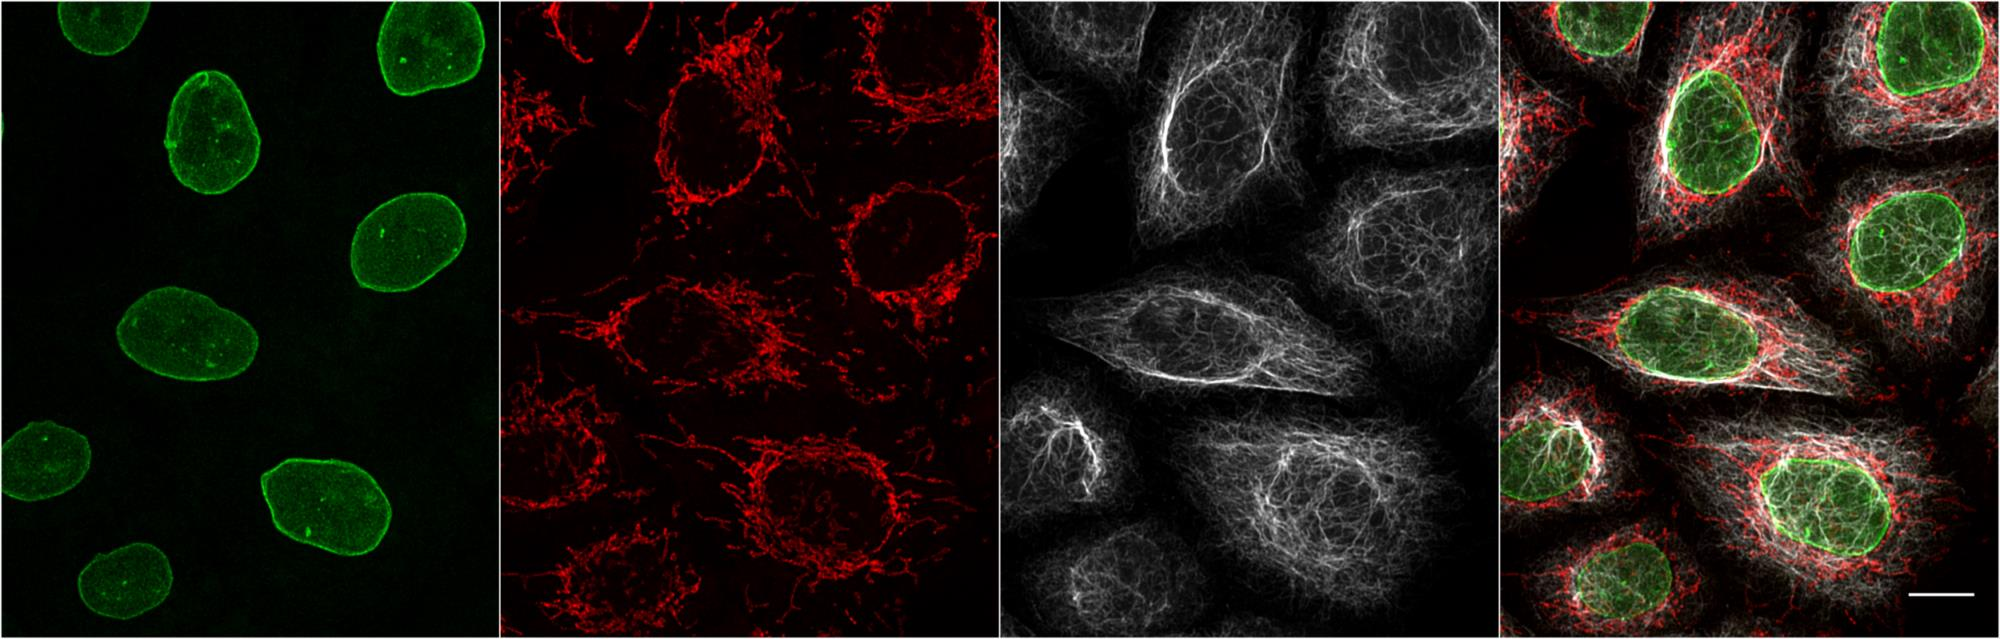 One-step immunostaining is the simultaneous incubation of mouse IgG1 primary antibody and anti-mouse IgG1 Nano-Secondary. This method reduces incubation and hands-on time. Simultaneous incubation also supports multiplexing, tissue penetration, and cell staining for flow cytometry.